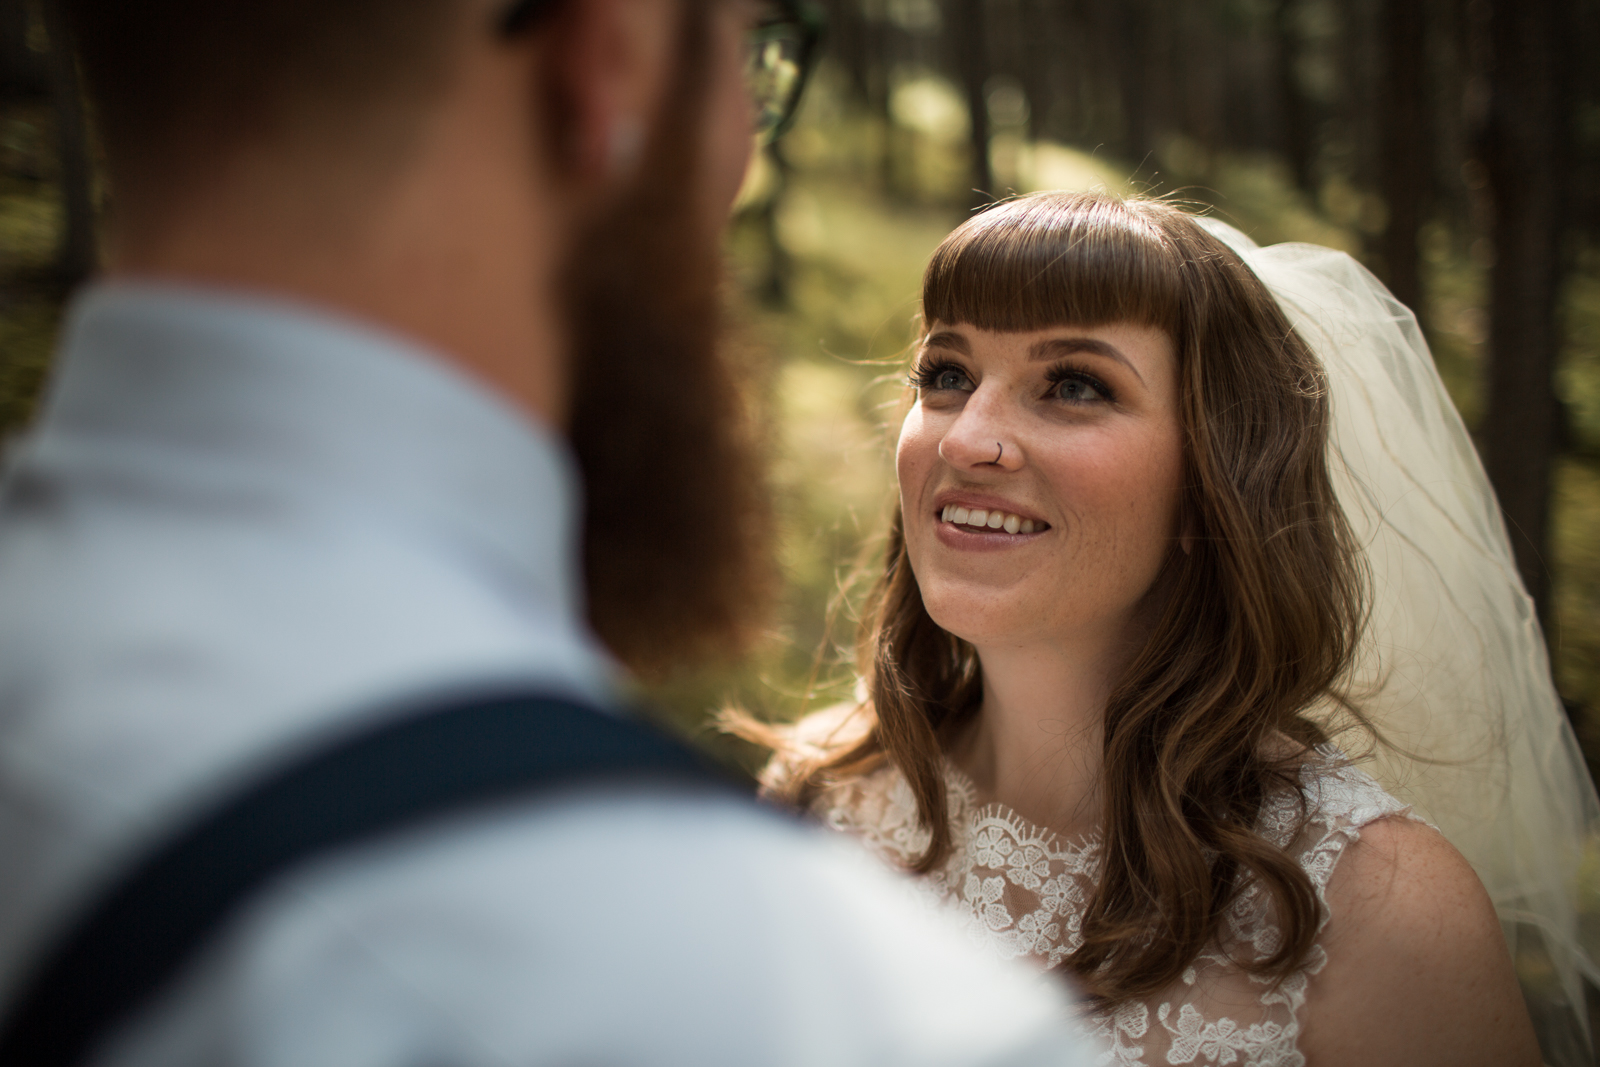 31-willow_and_wolf_photography_stephanie_and_kyle_banff_wedding_blogatp_7754